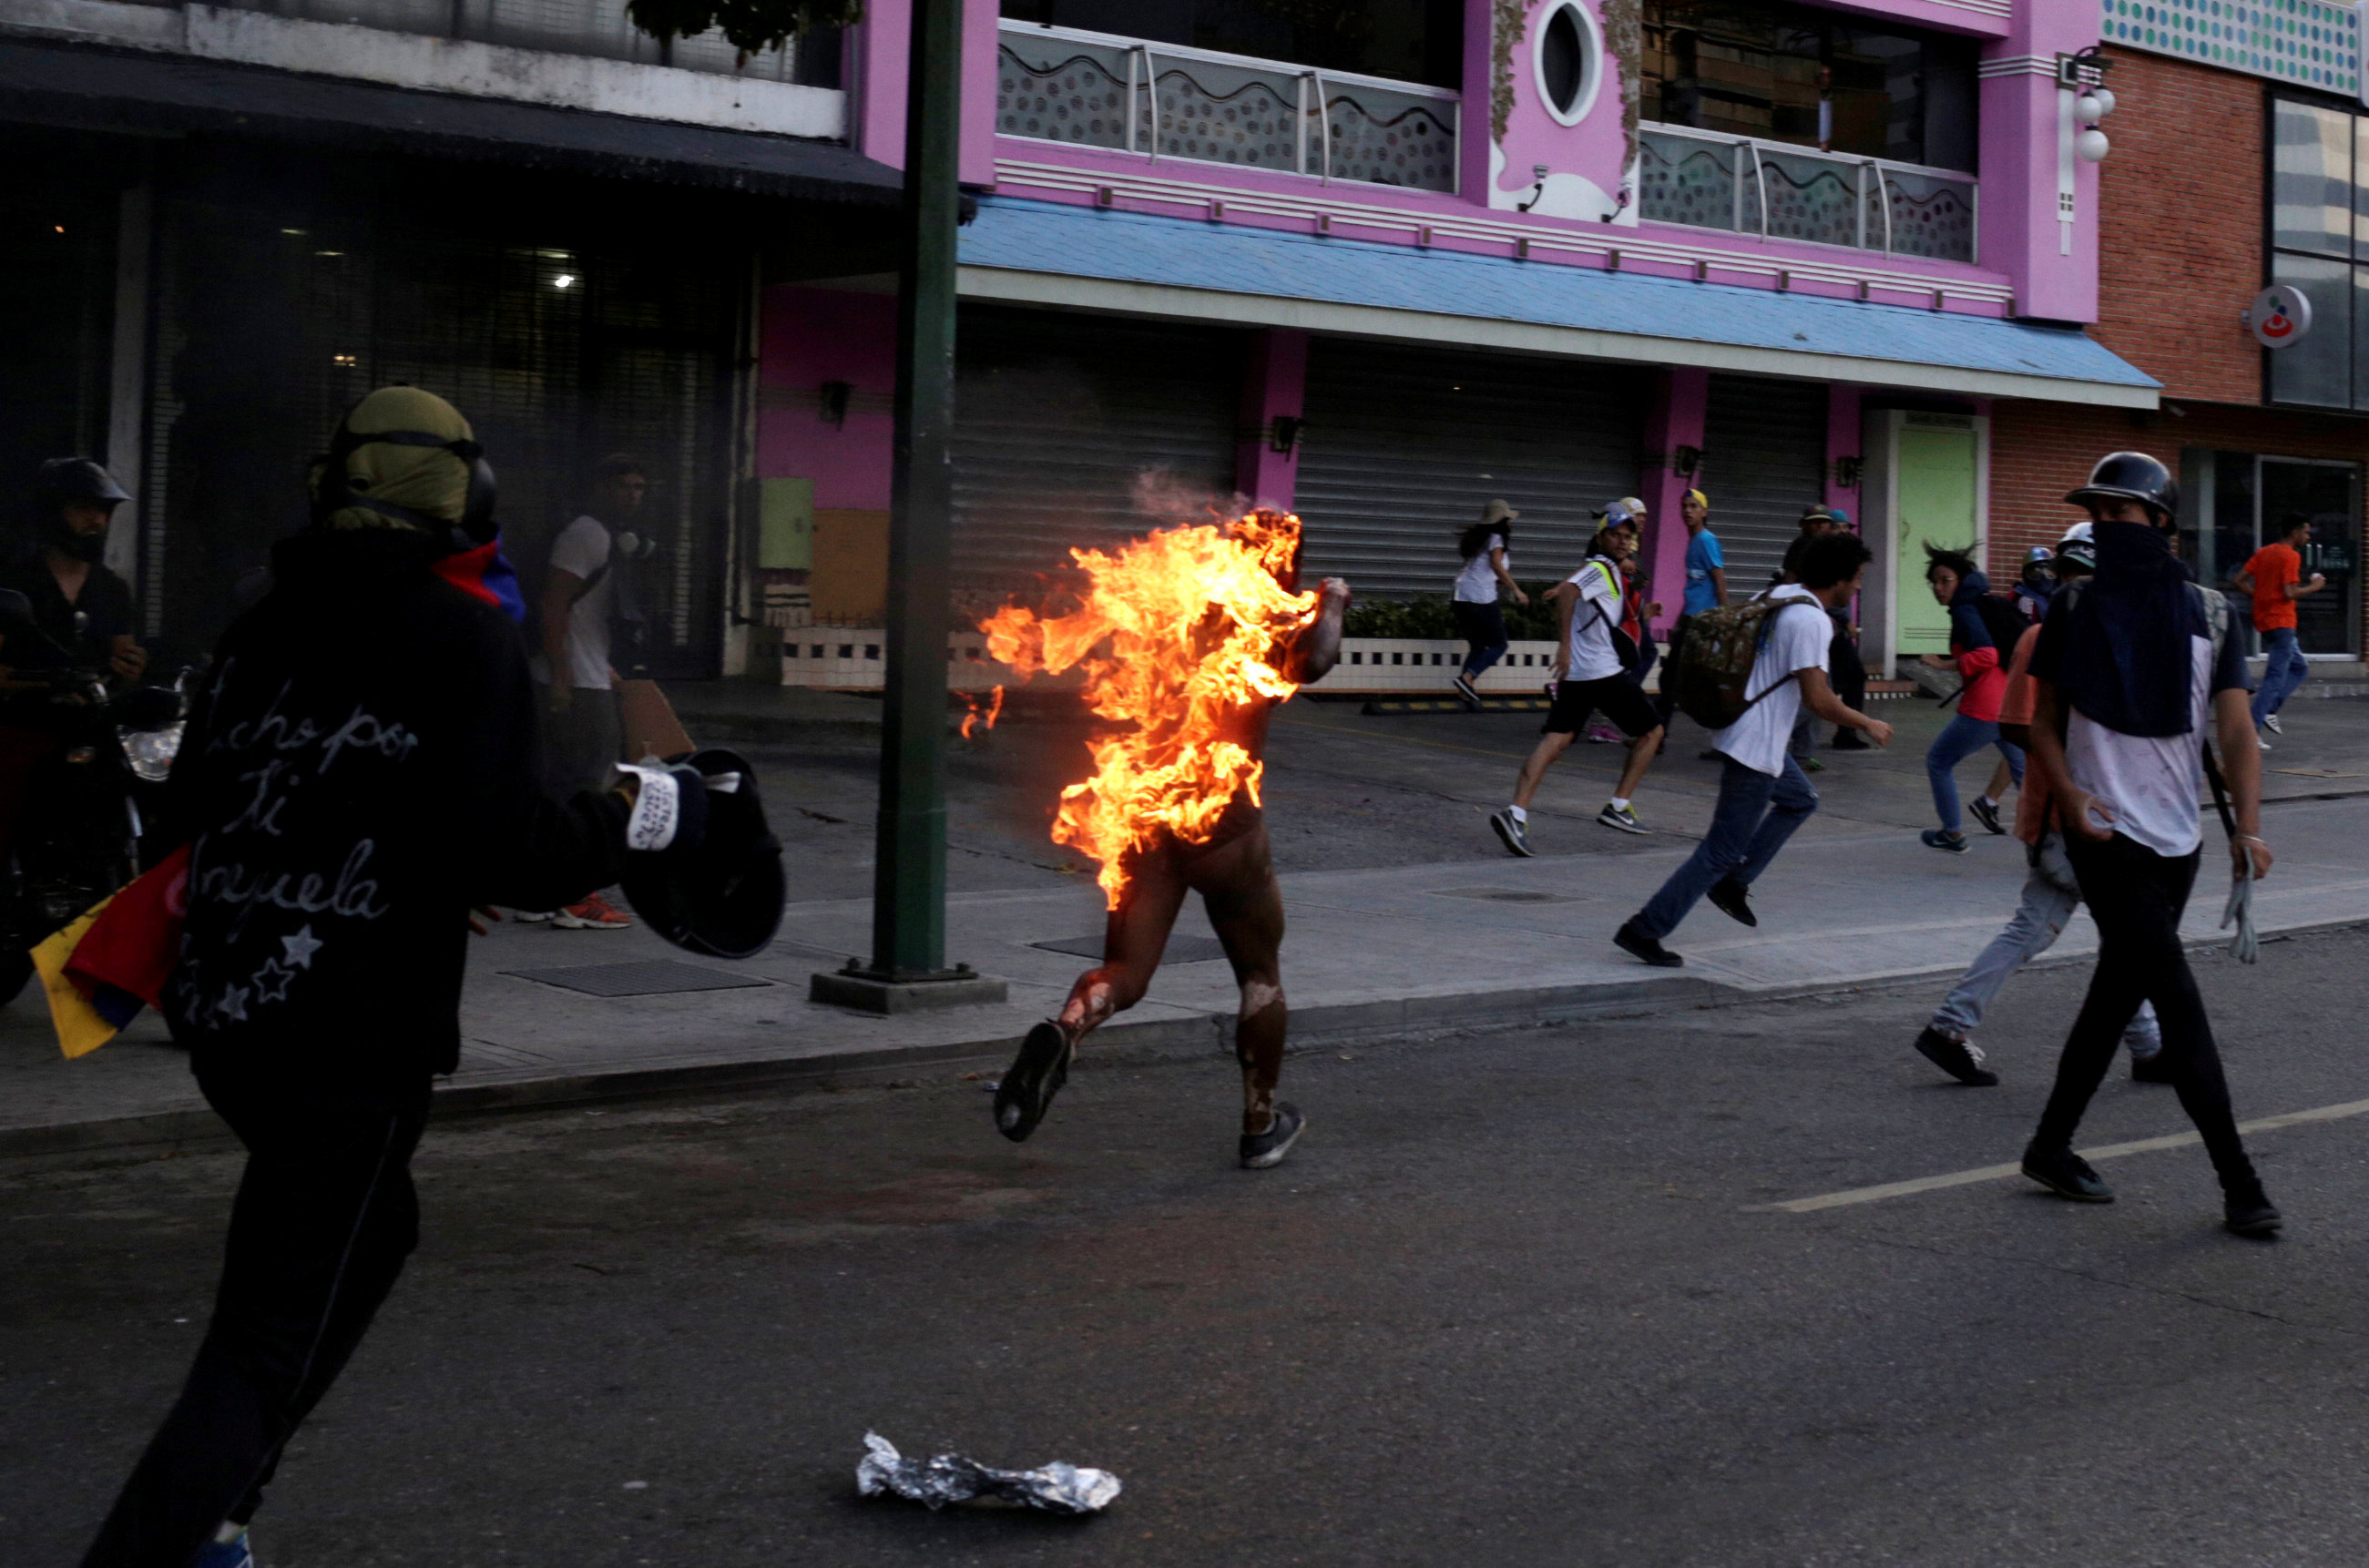 Man Set on Fire During Anti-Government Protests in Venezuela